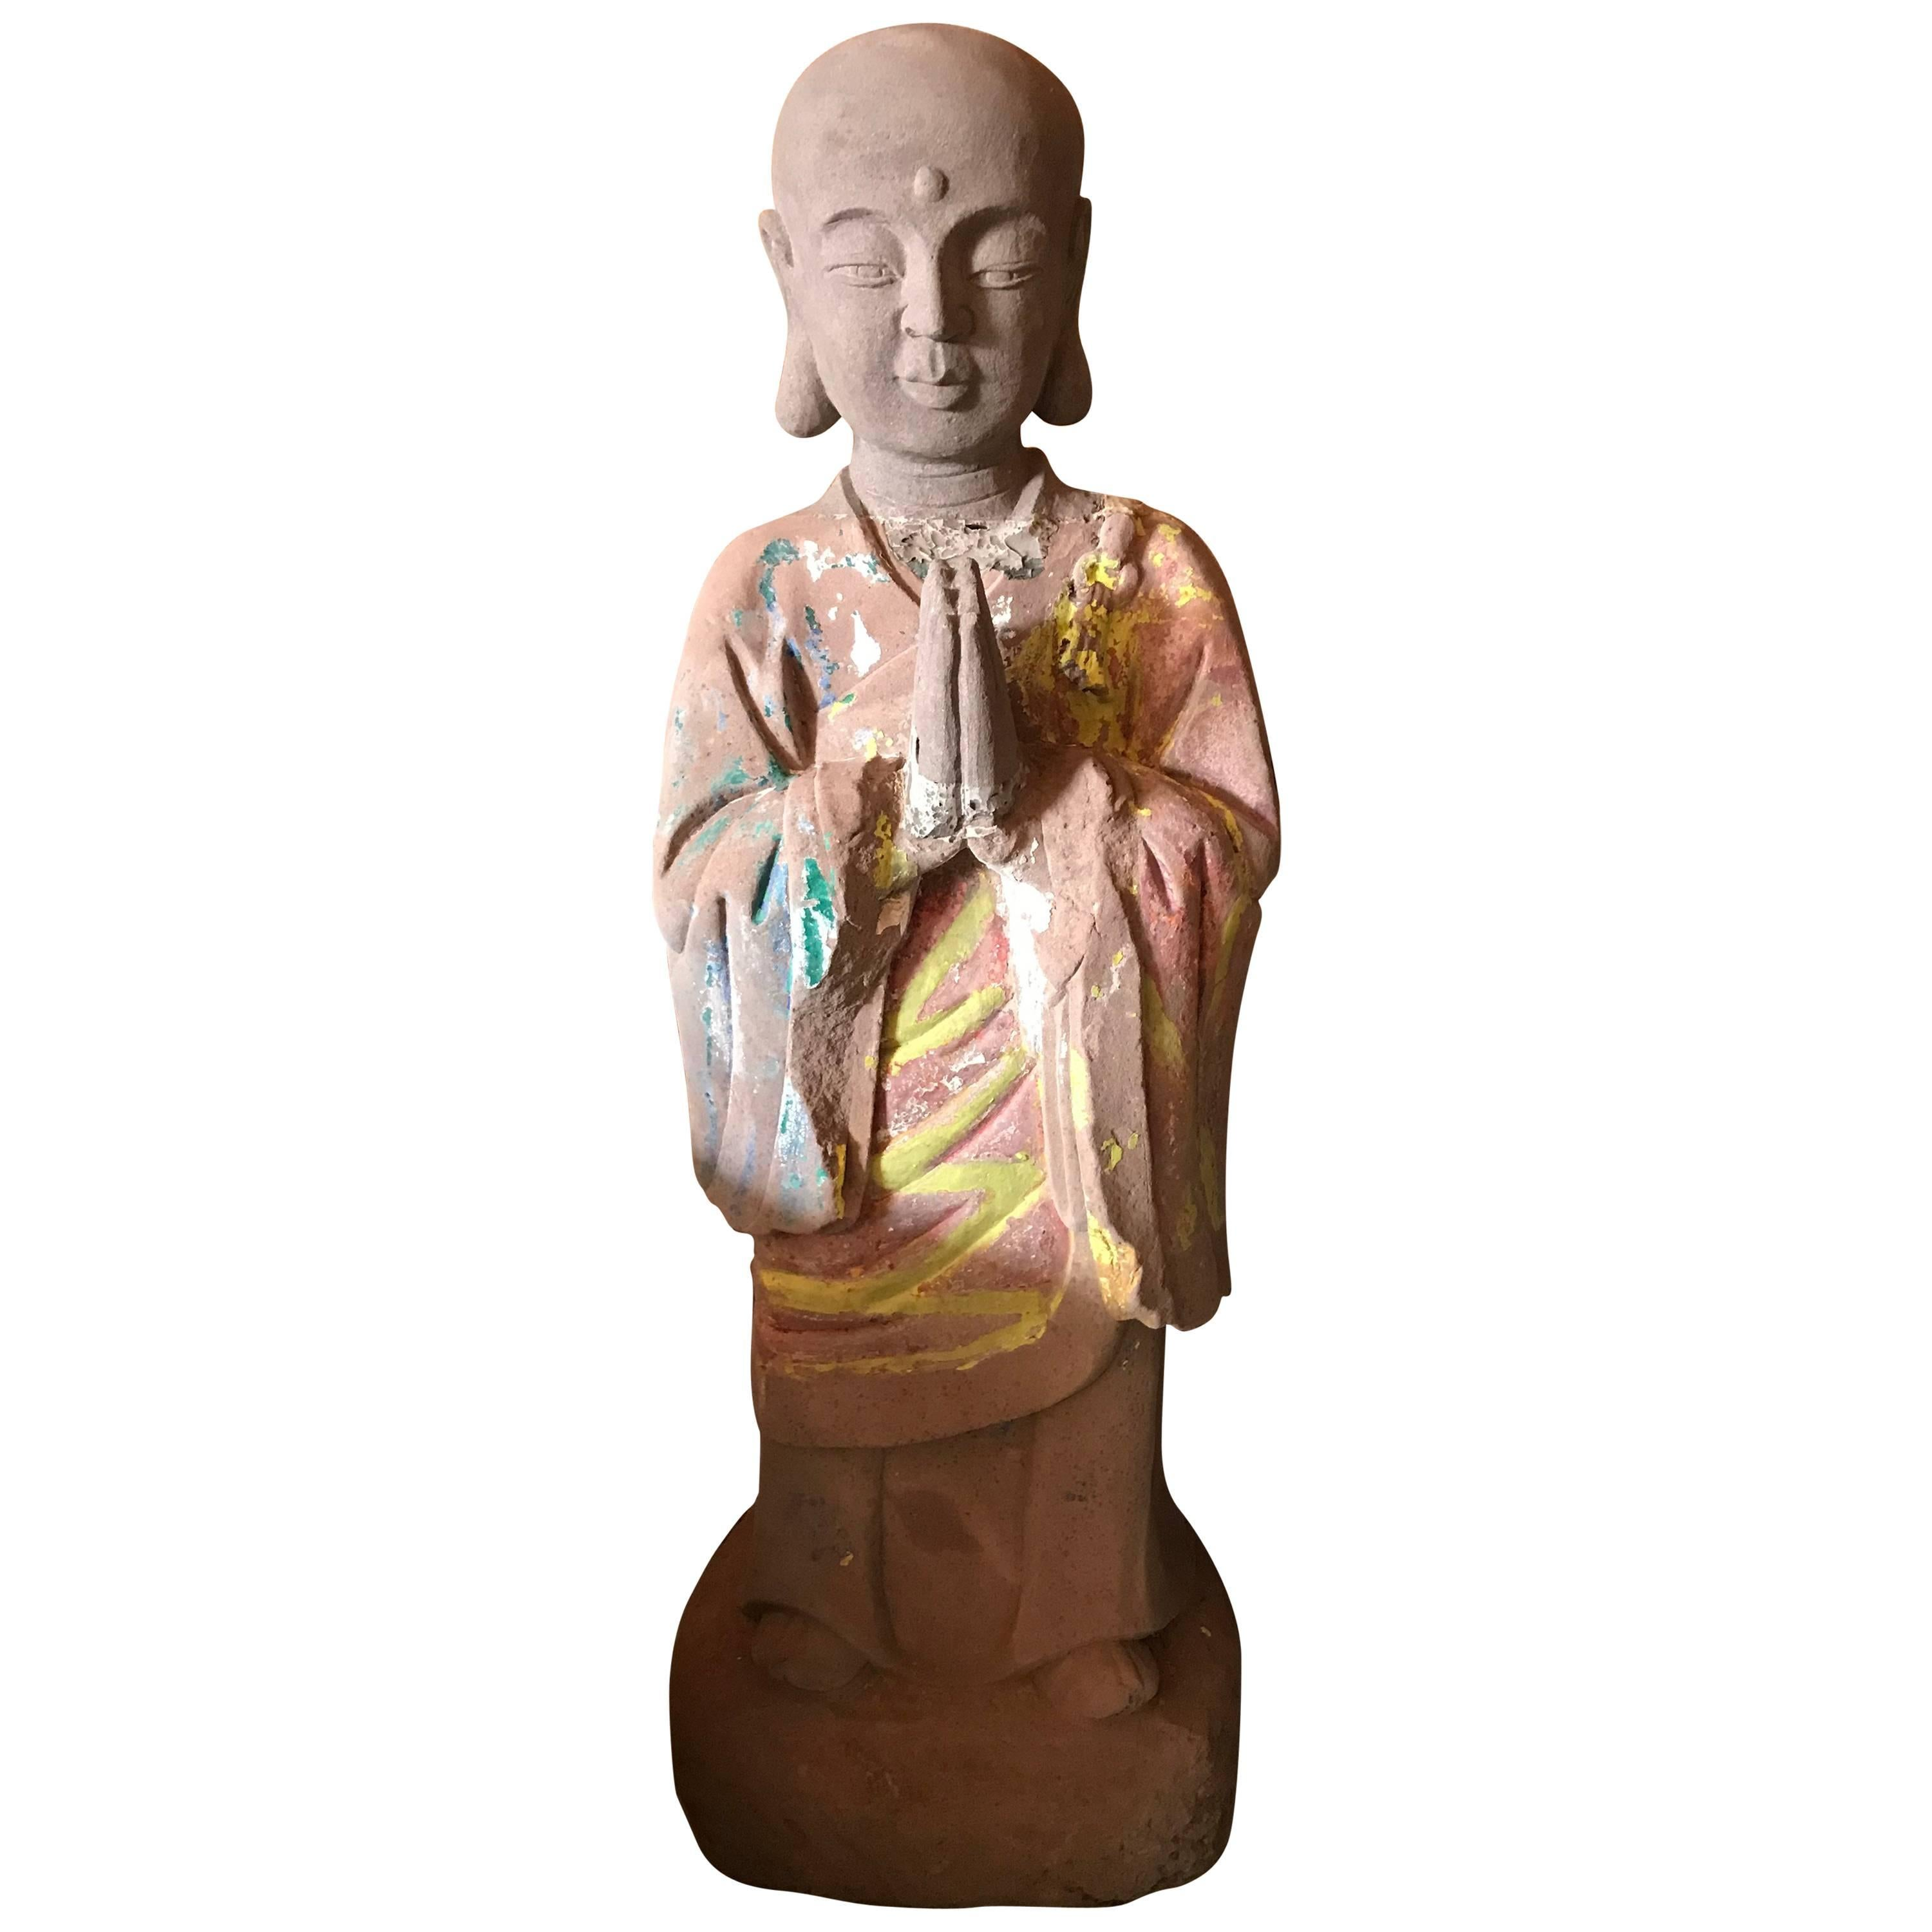 Important Chinese Antique Hand-Carved Stone Figure of Buddhas' Kasyapa